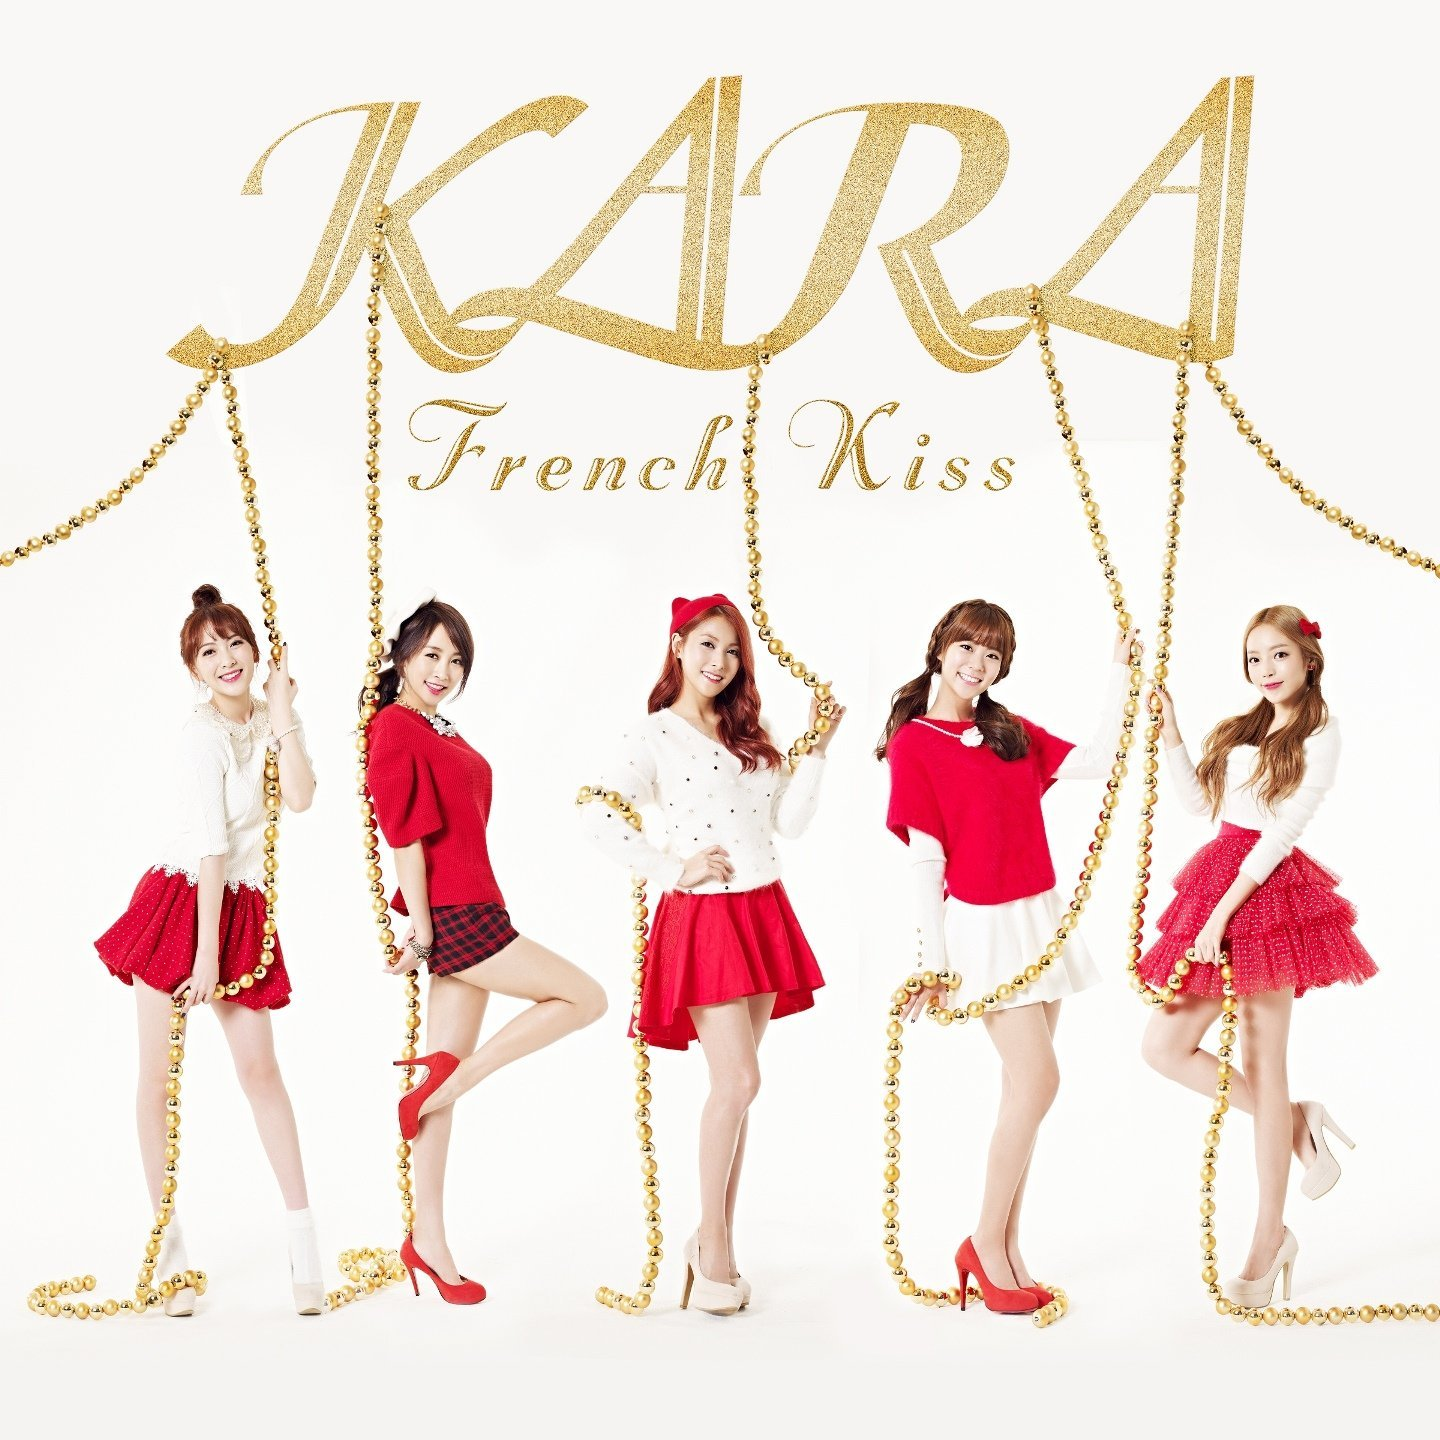 kara french kiss フレンチキス color coded lyrics